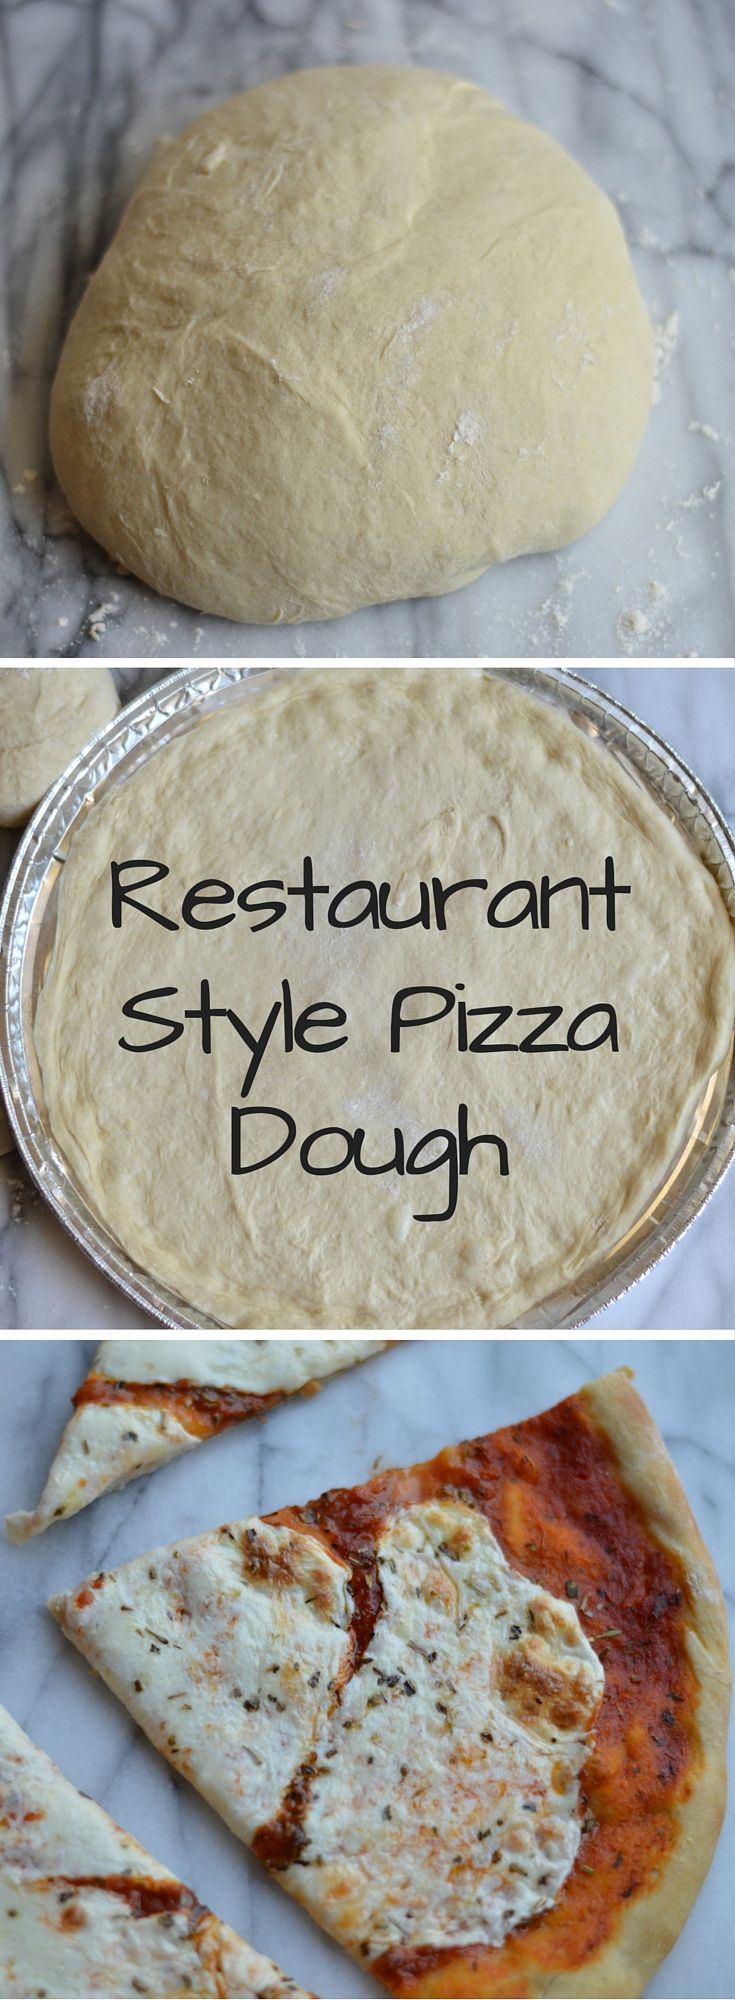 Restaurant Style Pizza Dough - let everyone pick their favorite toppings for an awesome pizza night at home!